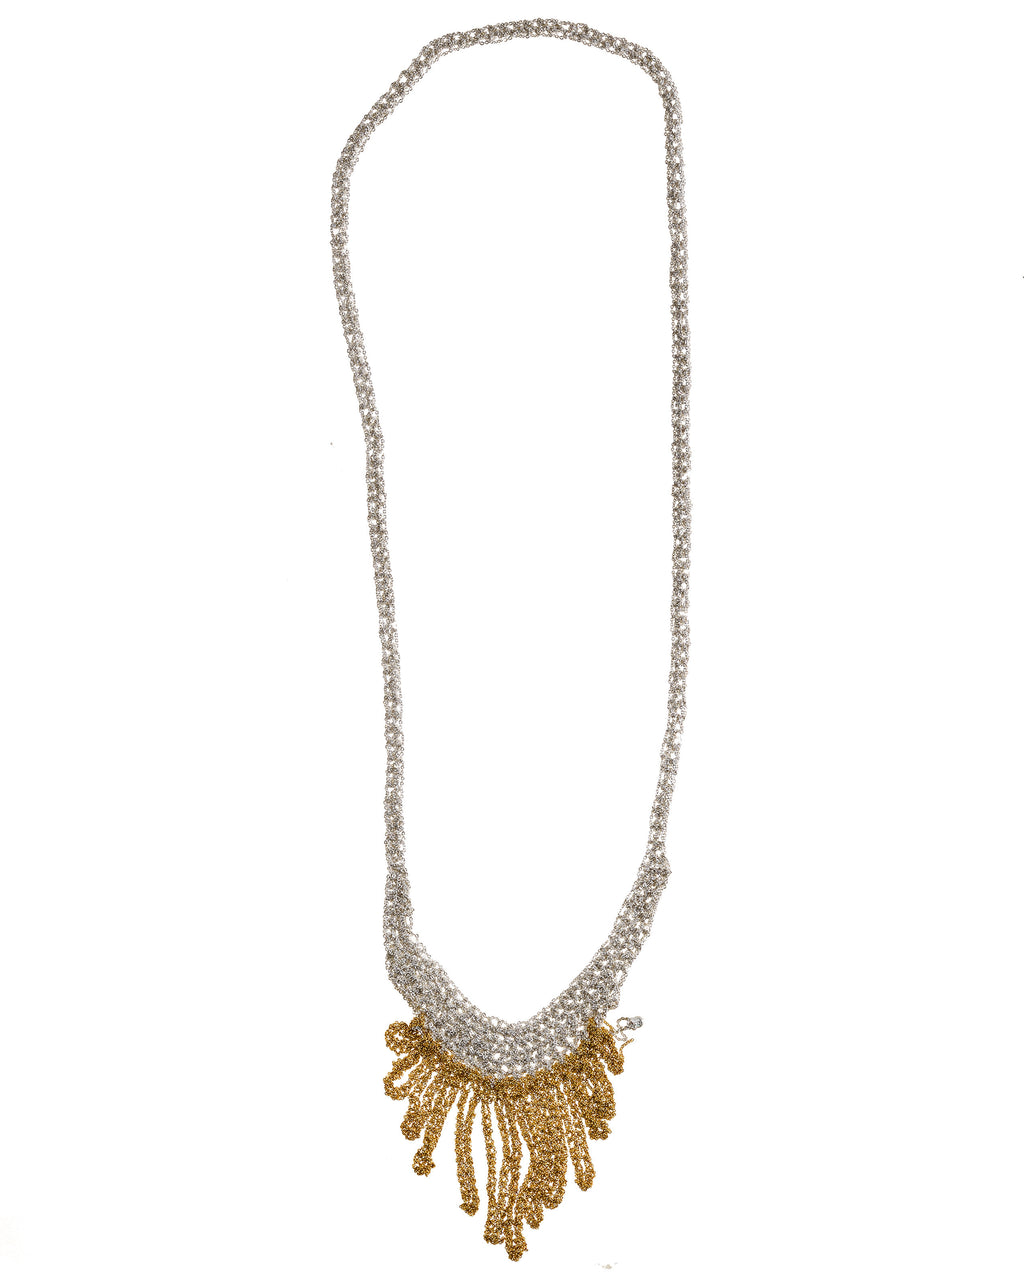 Small Fringe Necklace in Silver + Gold